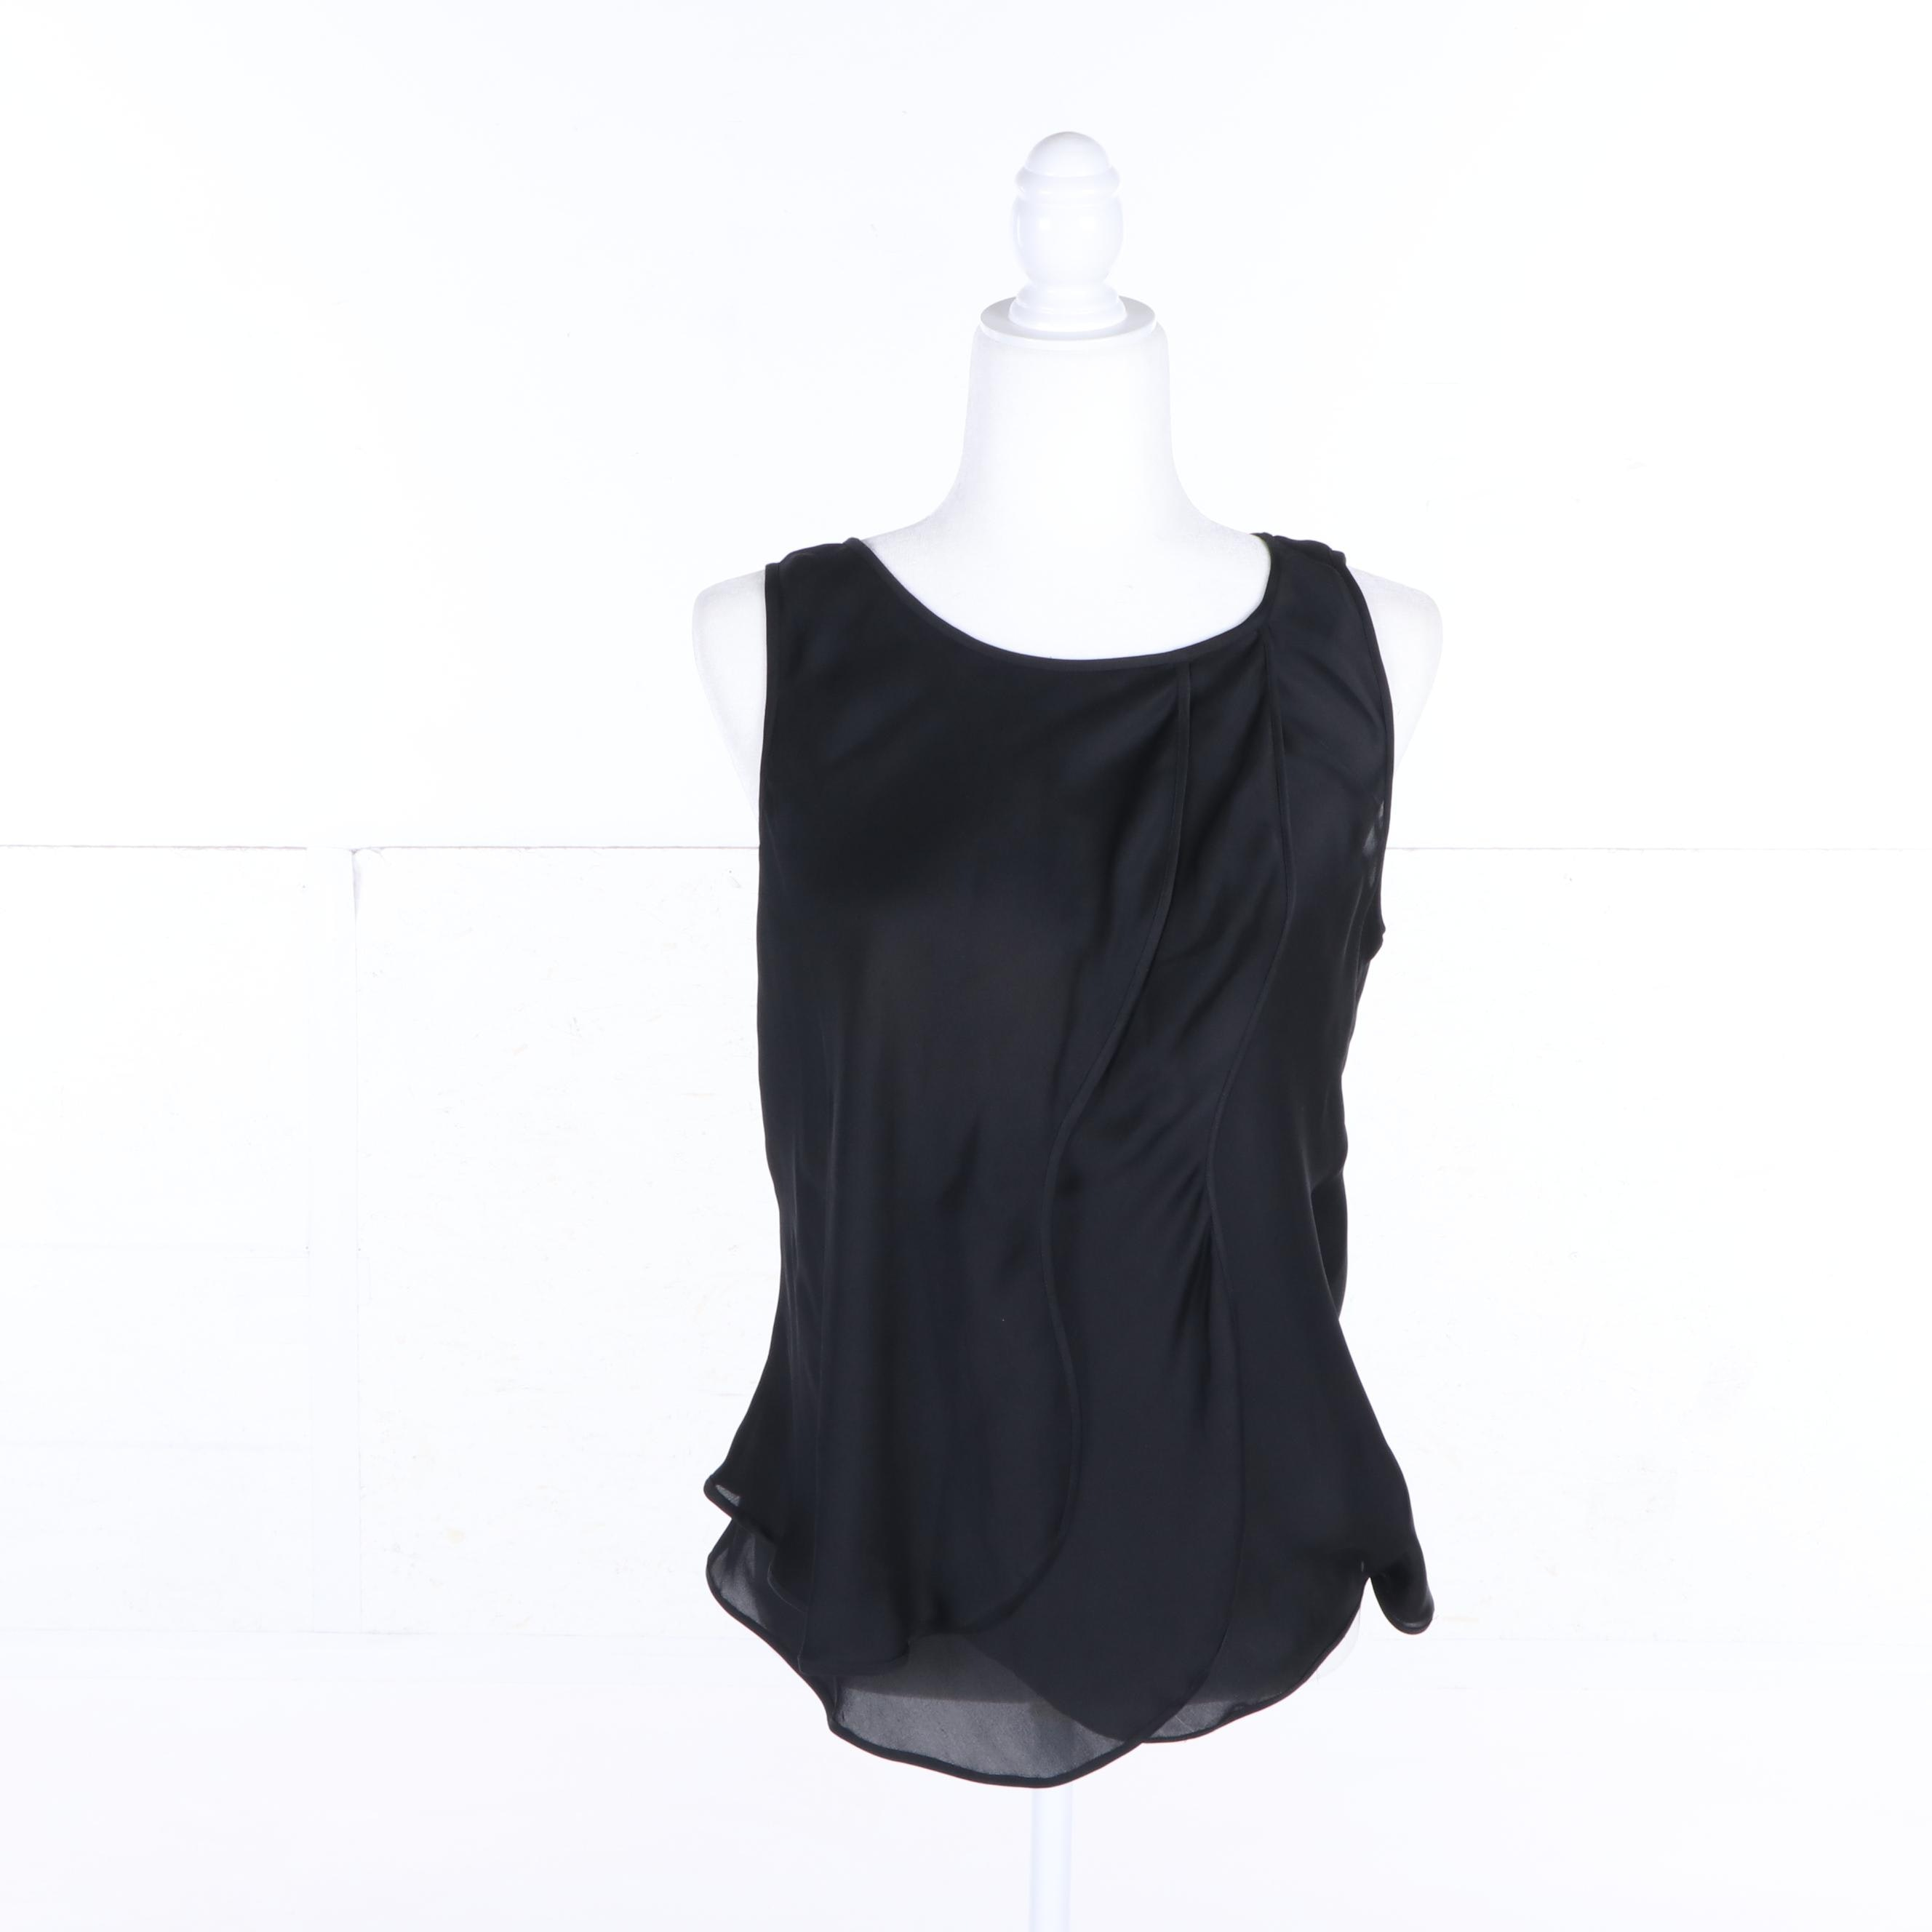 Women's Giorgio Armani Black Silk Sleeveless Top, Made in Italy